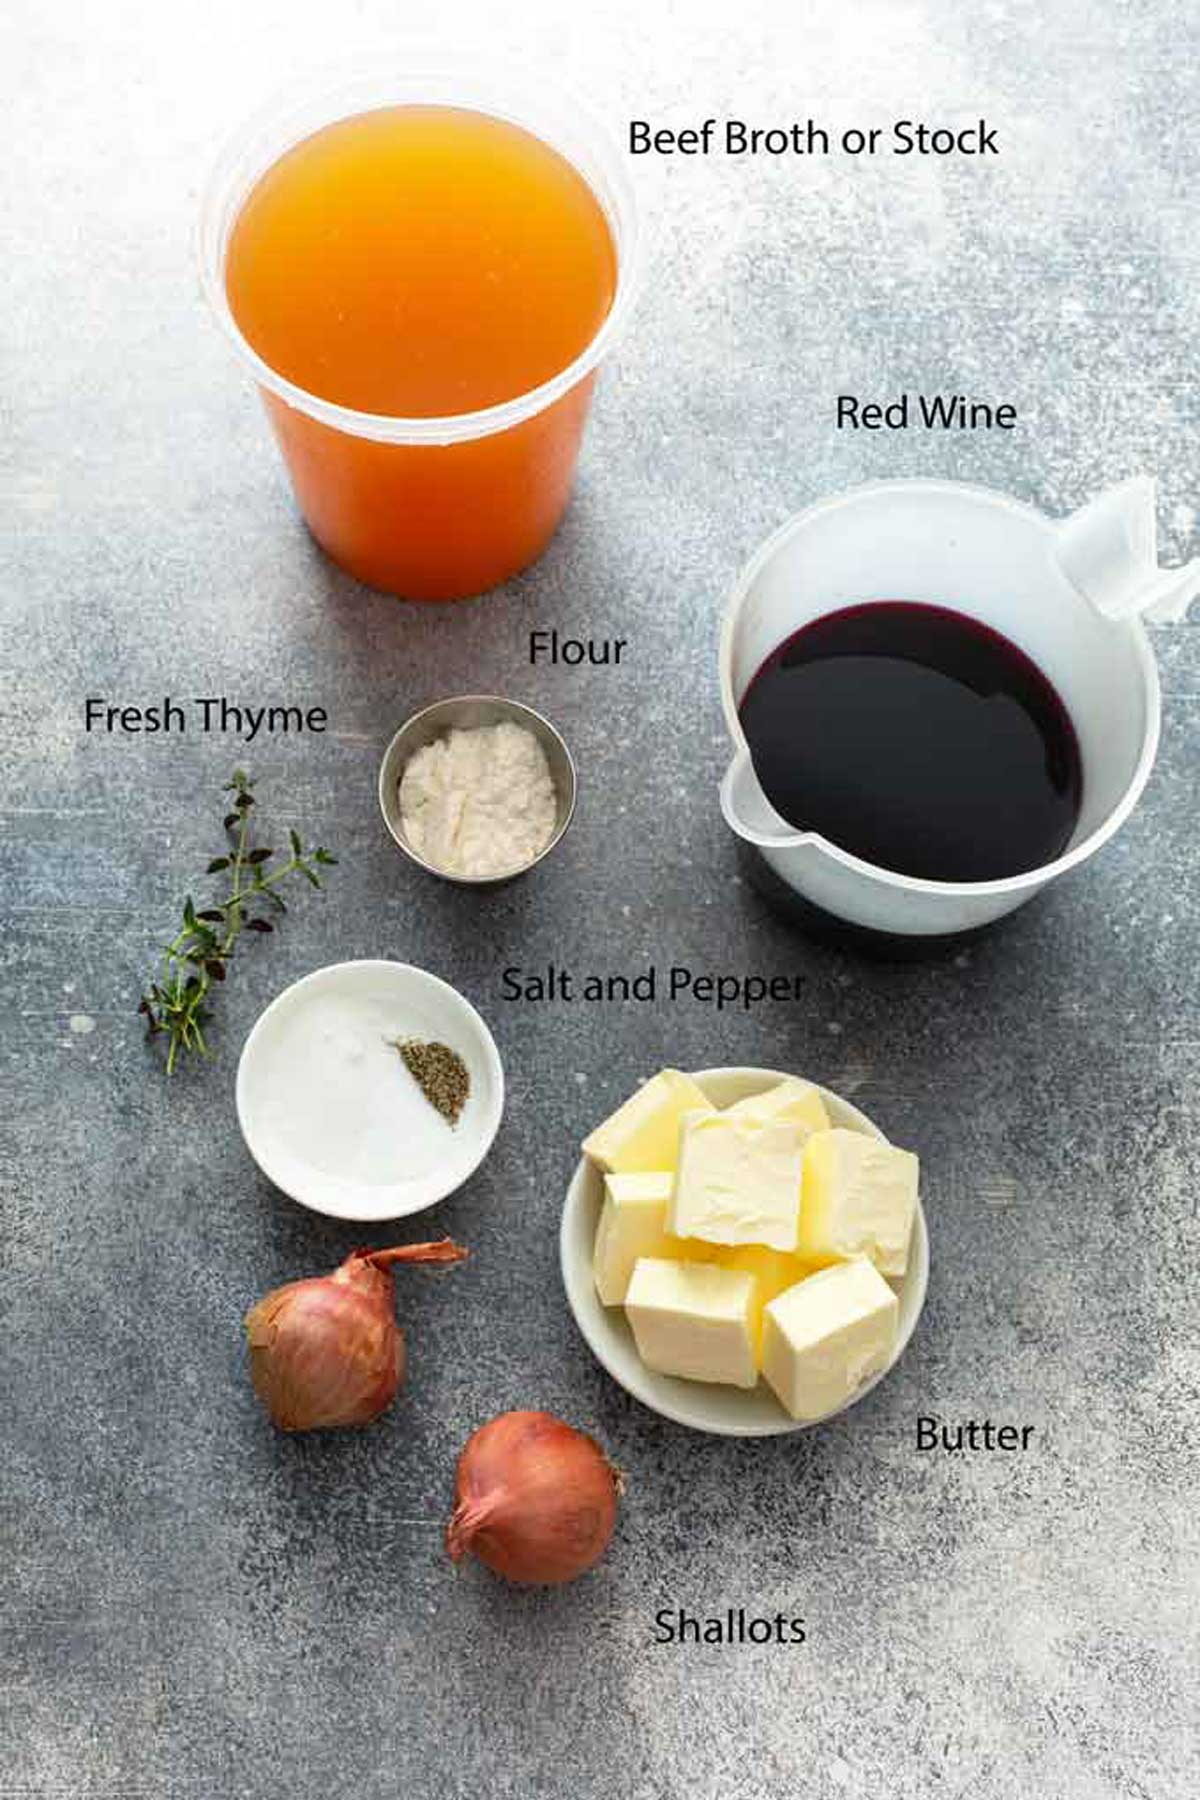 Ingredients to make red wine butter sauce.